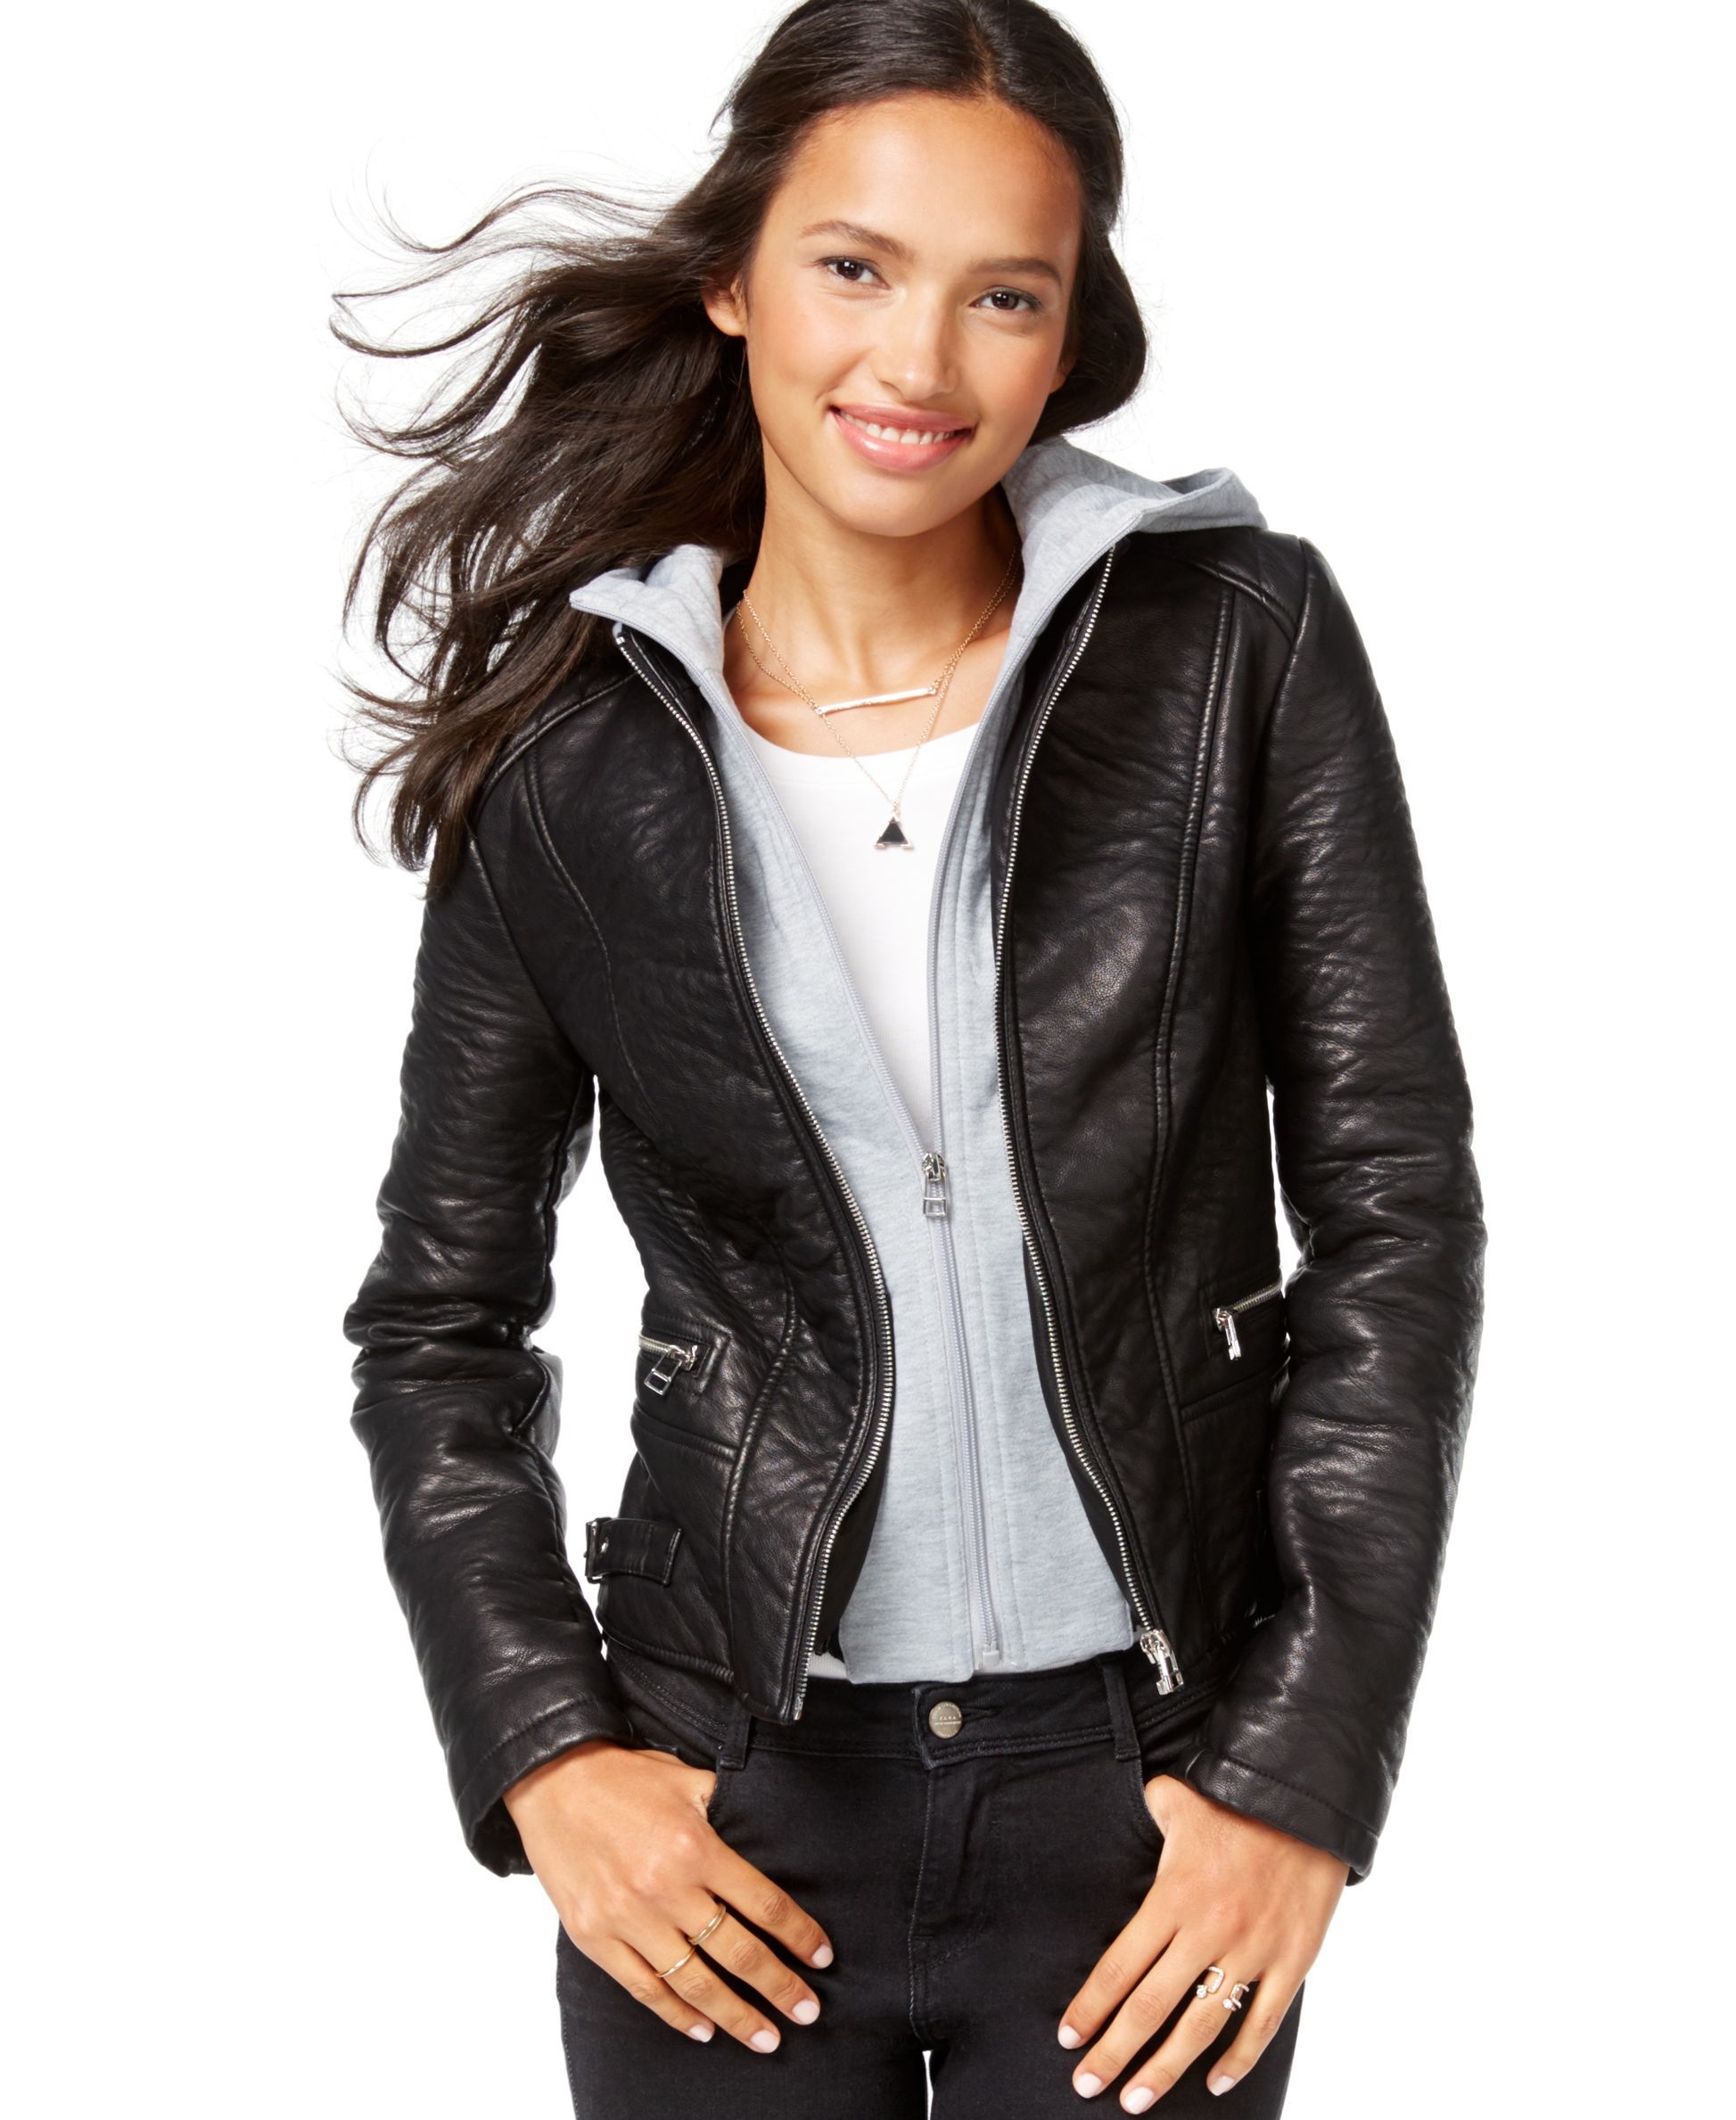 Wildflower FauxLeather Layered Hoodie Jacket Blazer